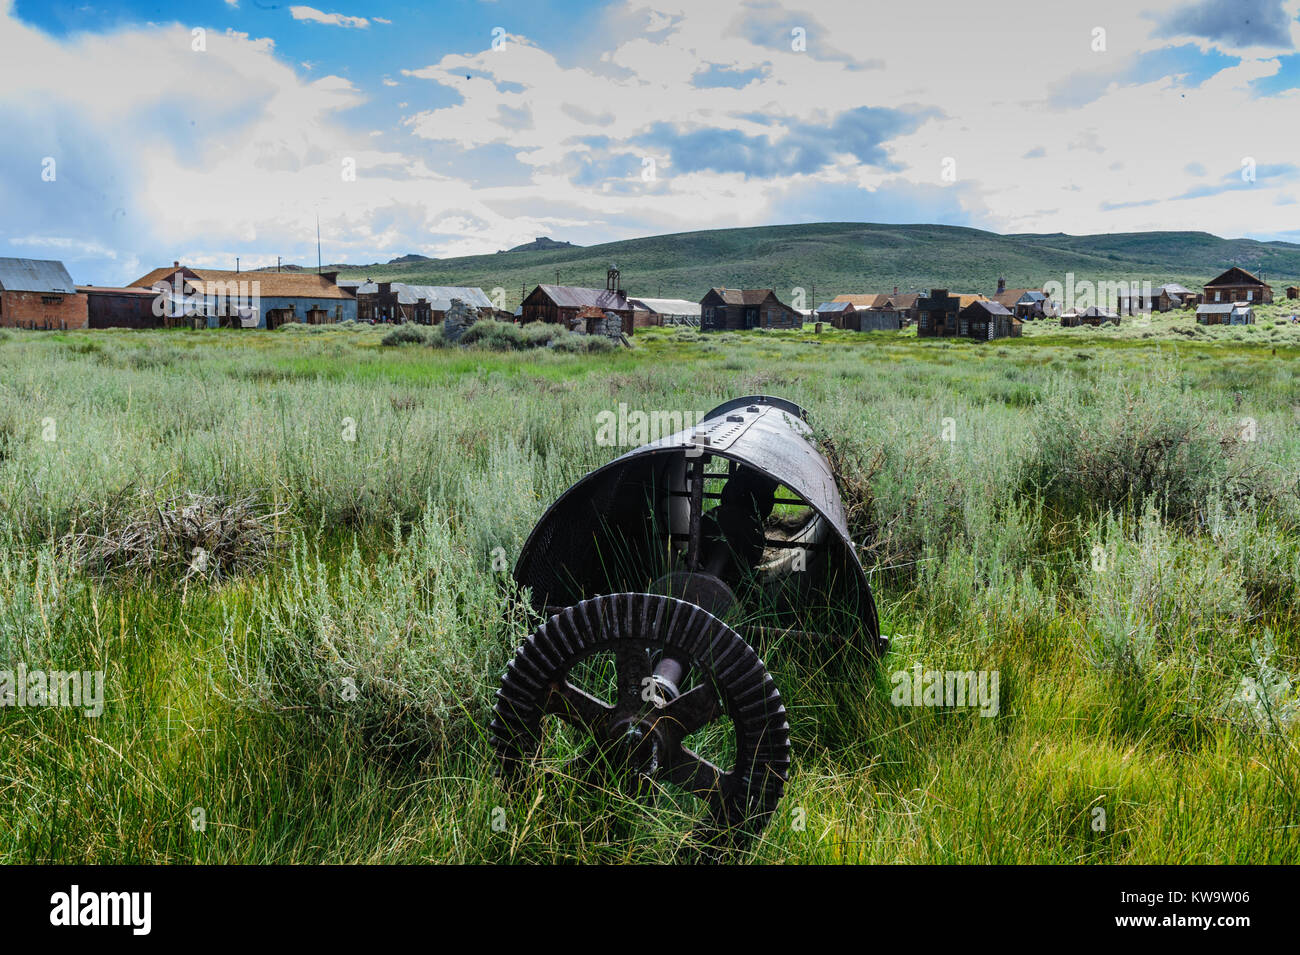 Old, abandoned Mining Equipment Stock Photo